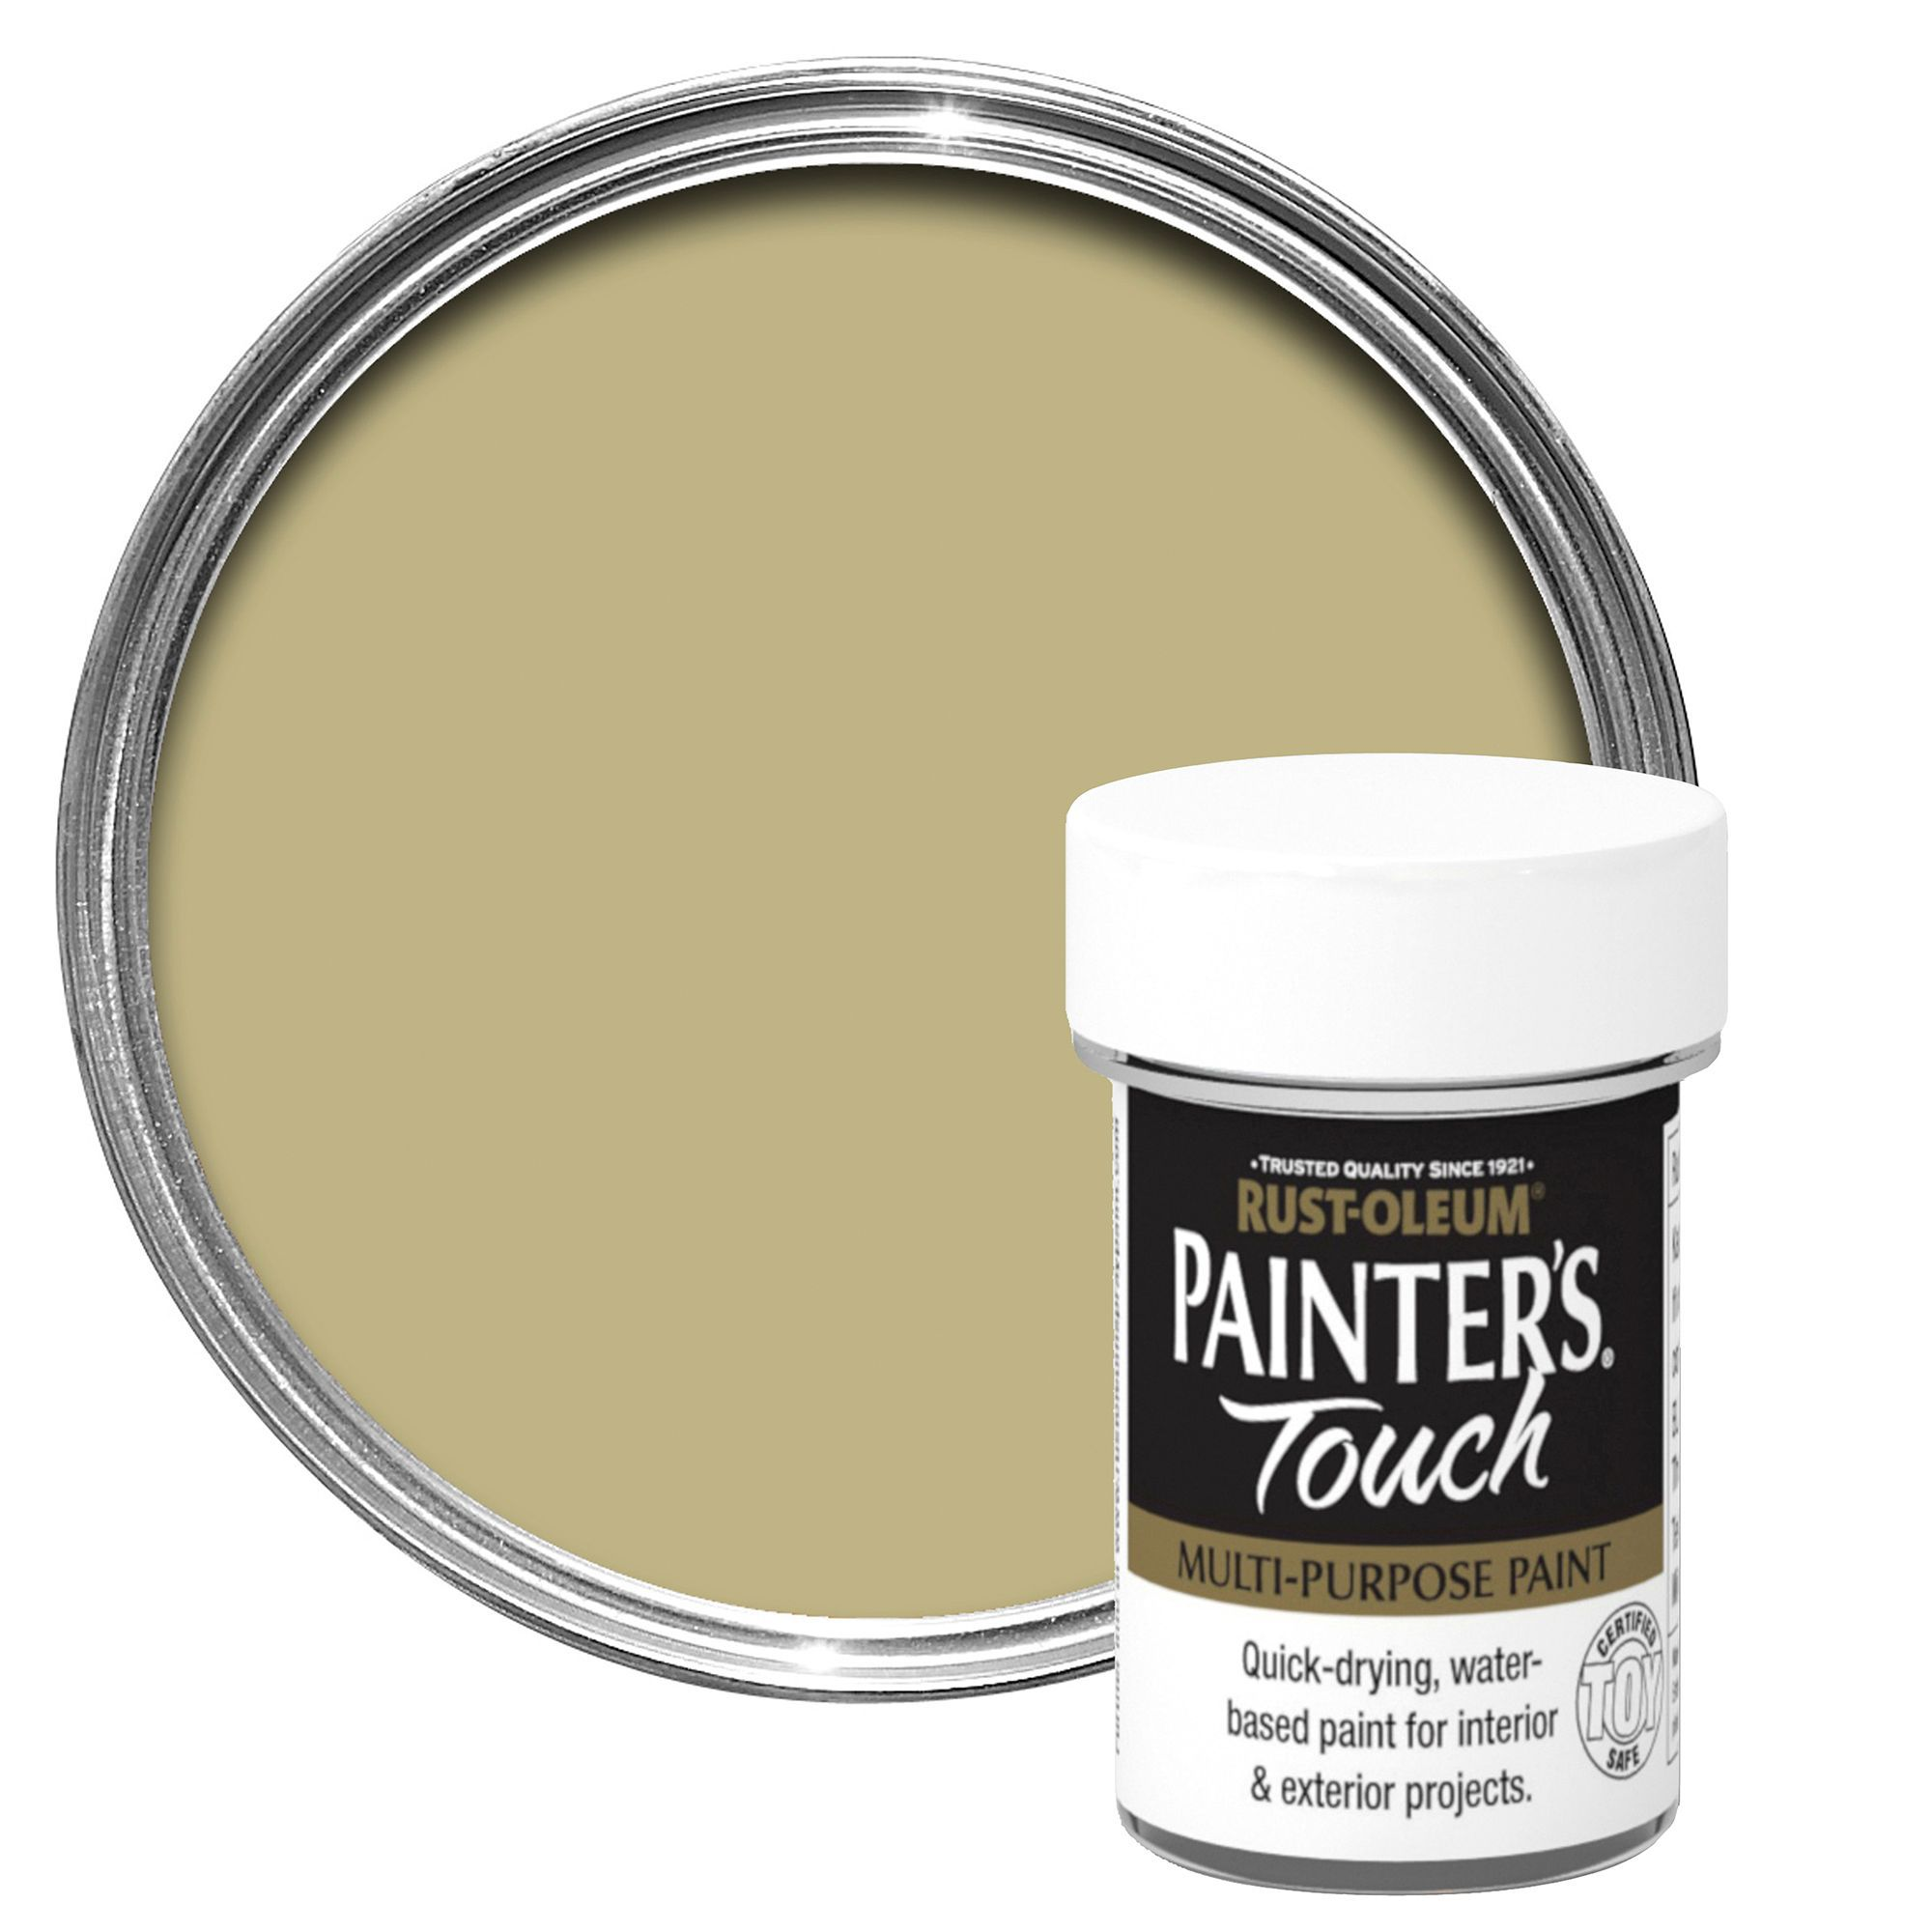 Rust-oleum Painter's Touch Interior & Exterior Gold Metallic Multipurpose Paint 20ml